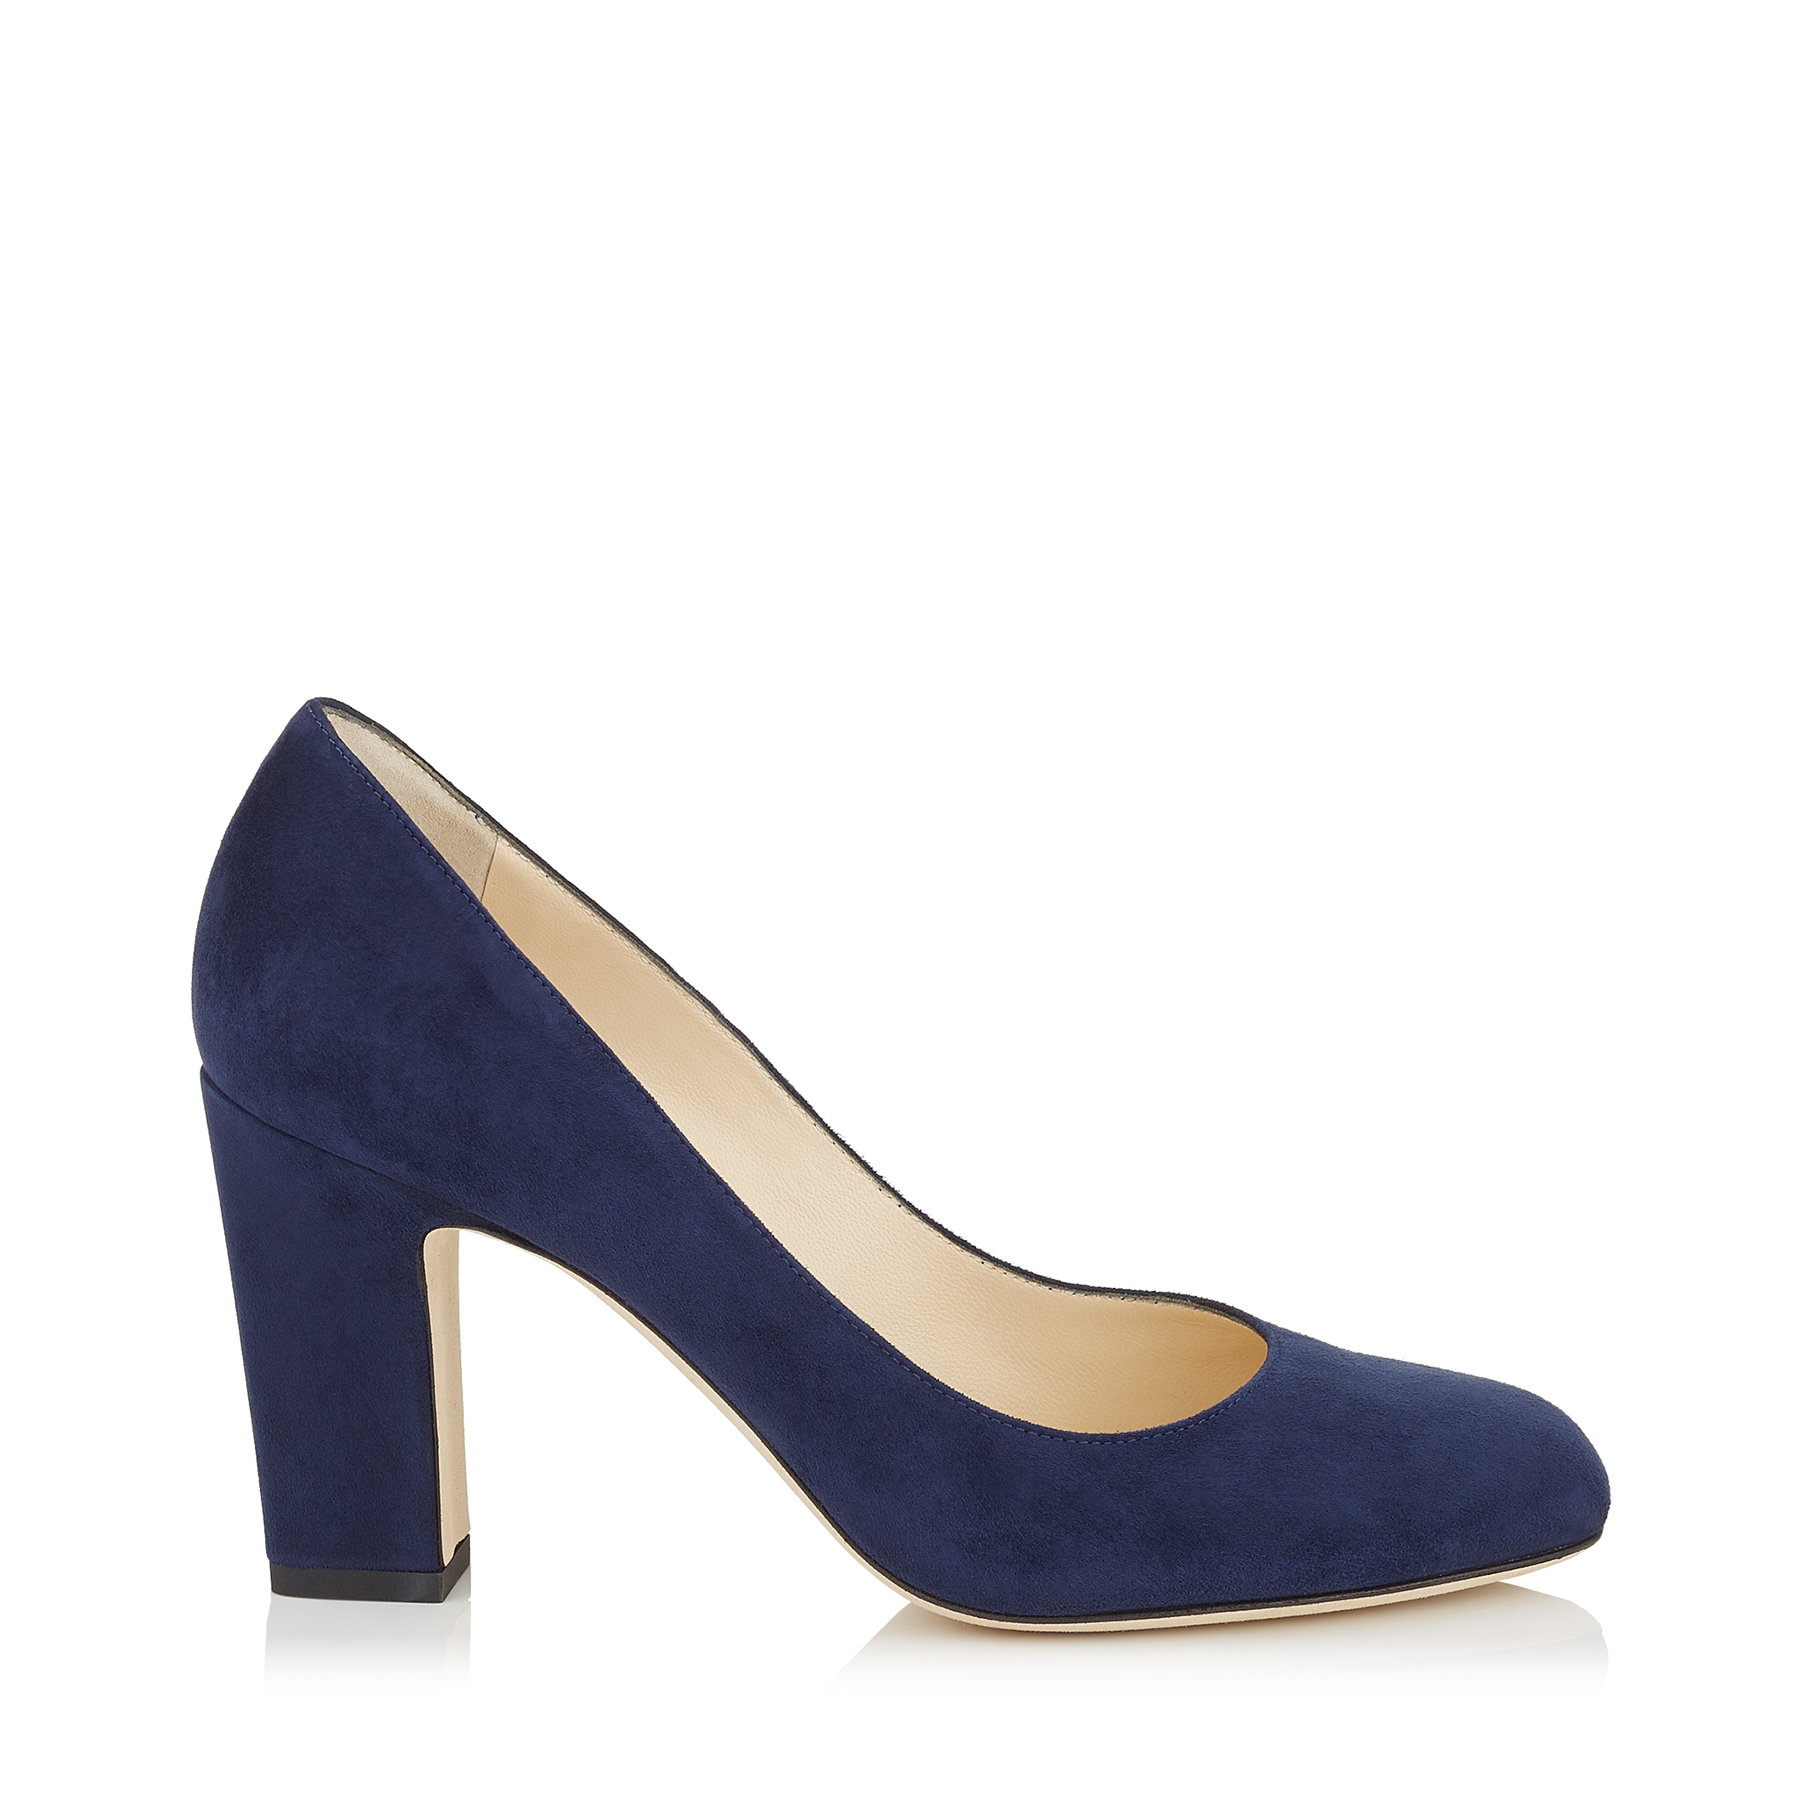 BILLIE 85 Navy Suede Round Toe Pumps with Chunky Heel by Jimmy Choo